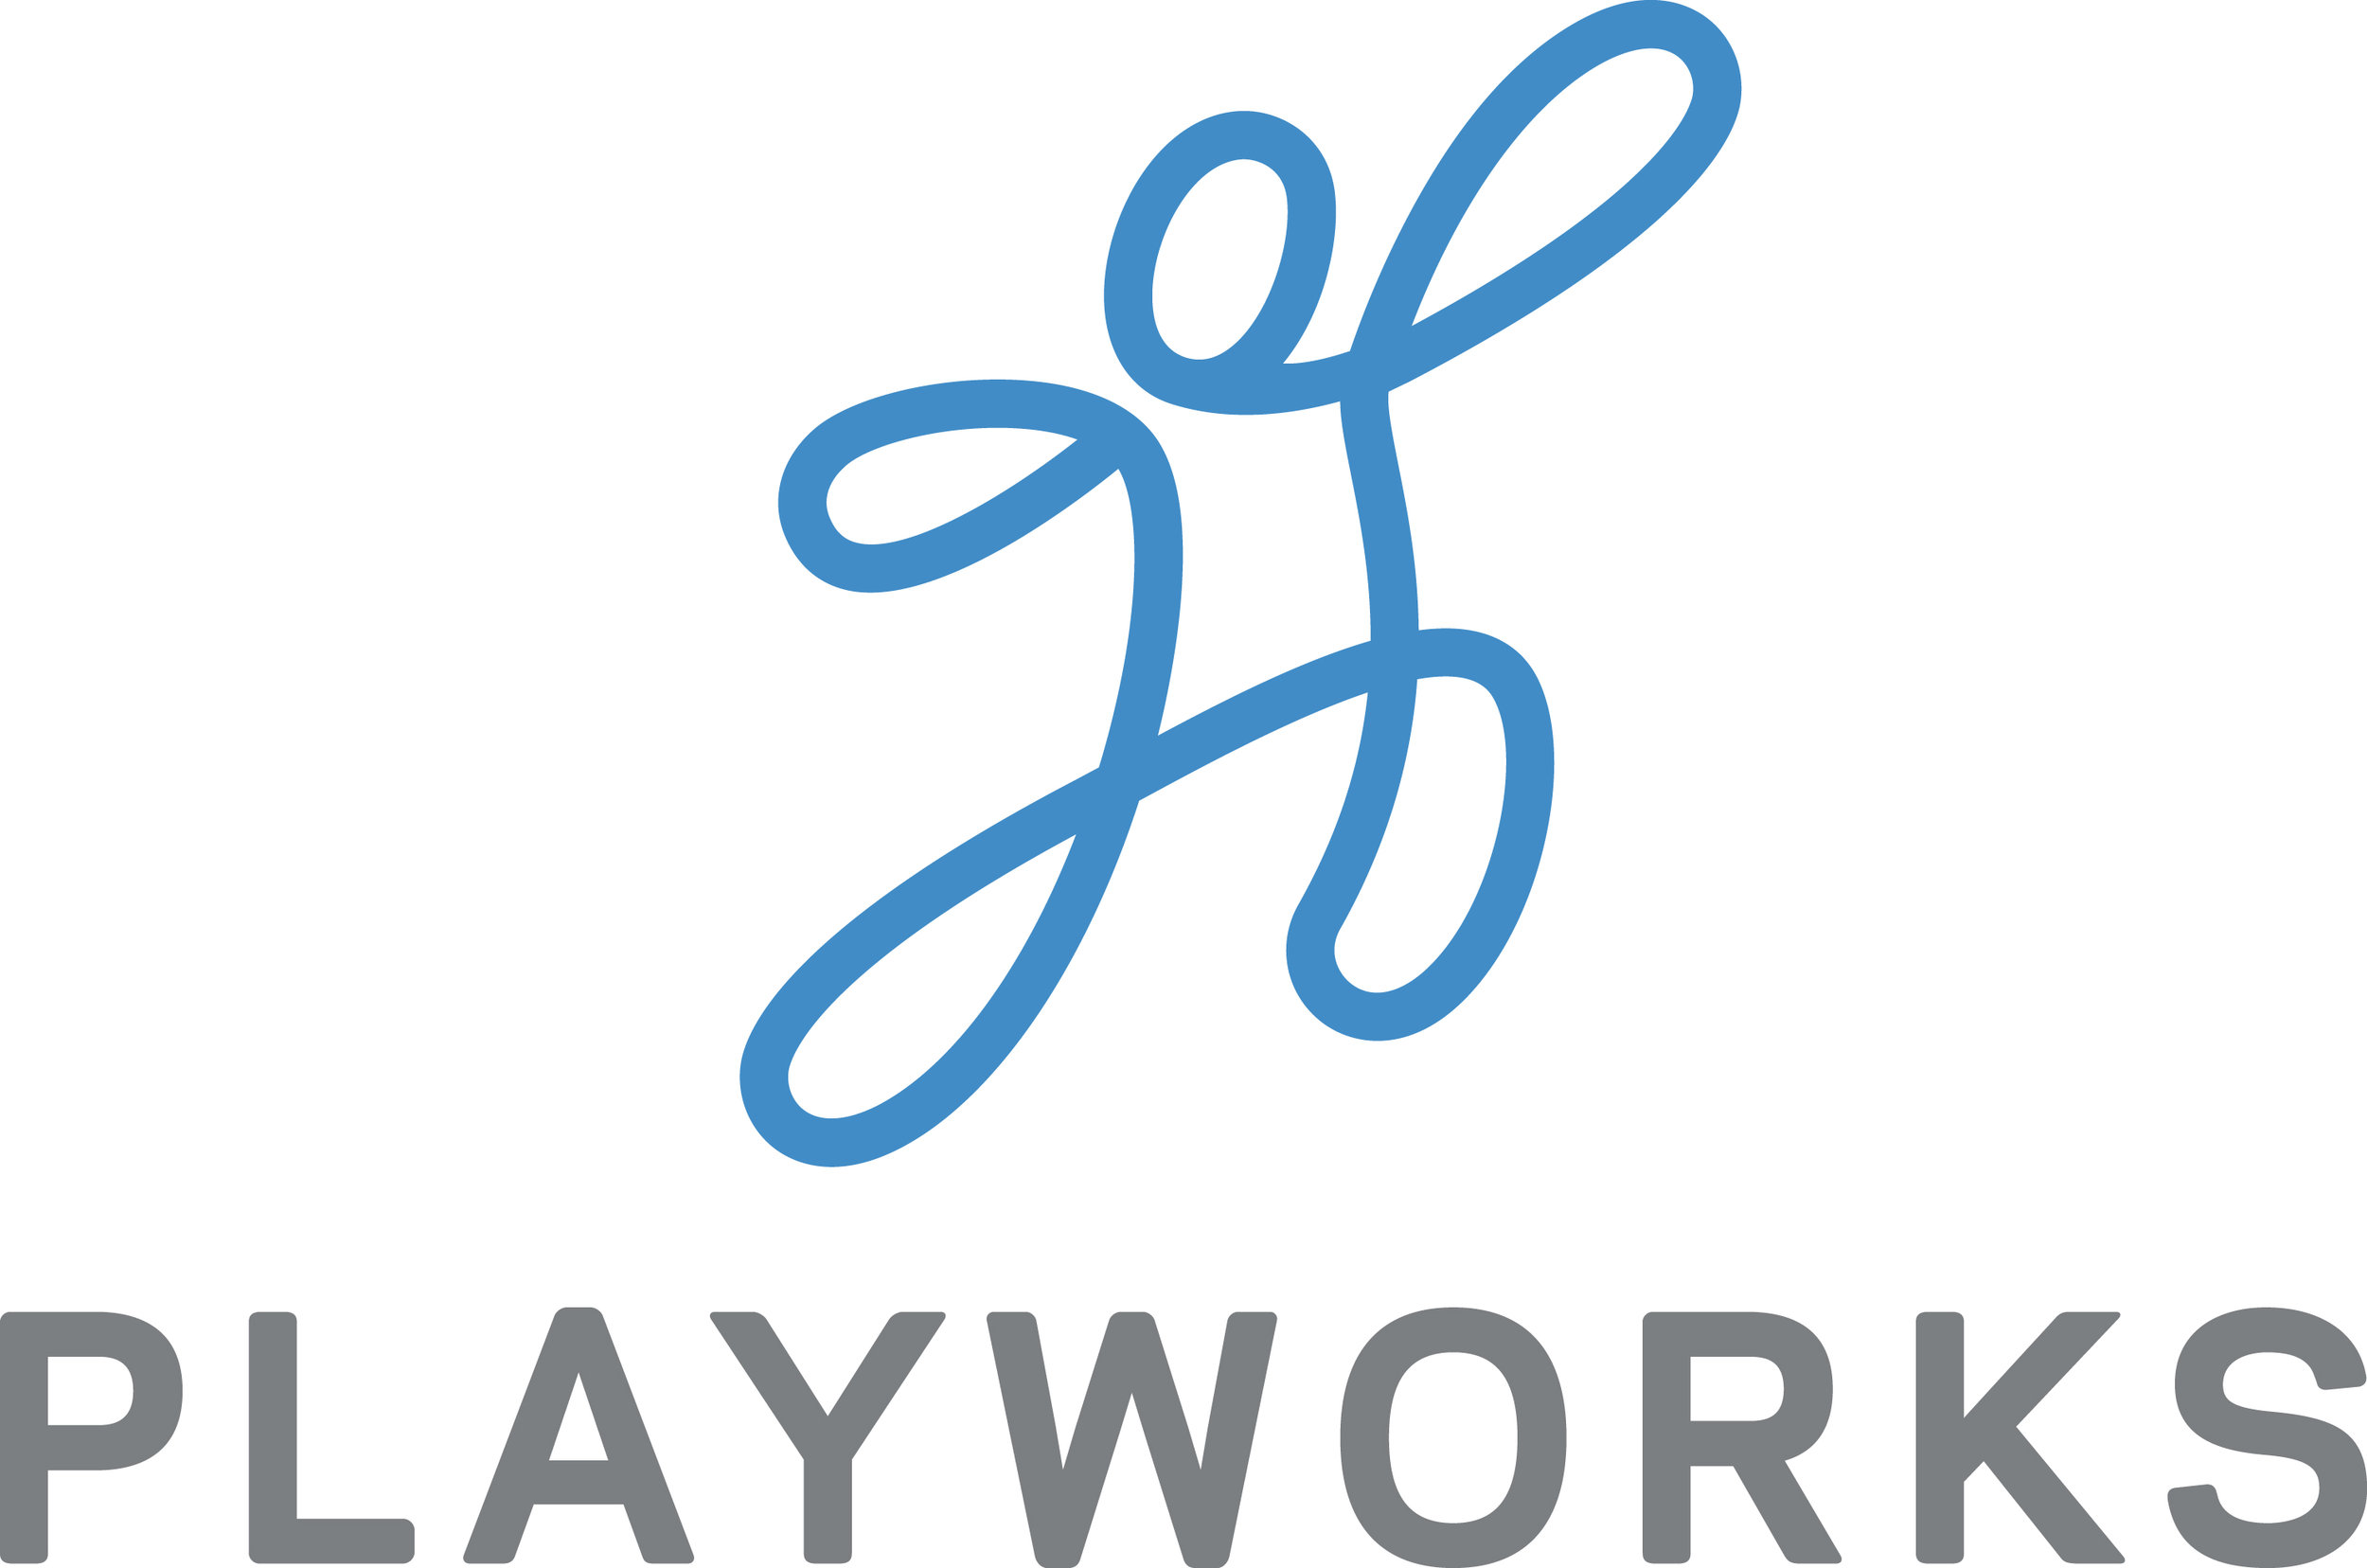 Playworks logo 2 color.jpg